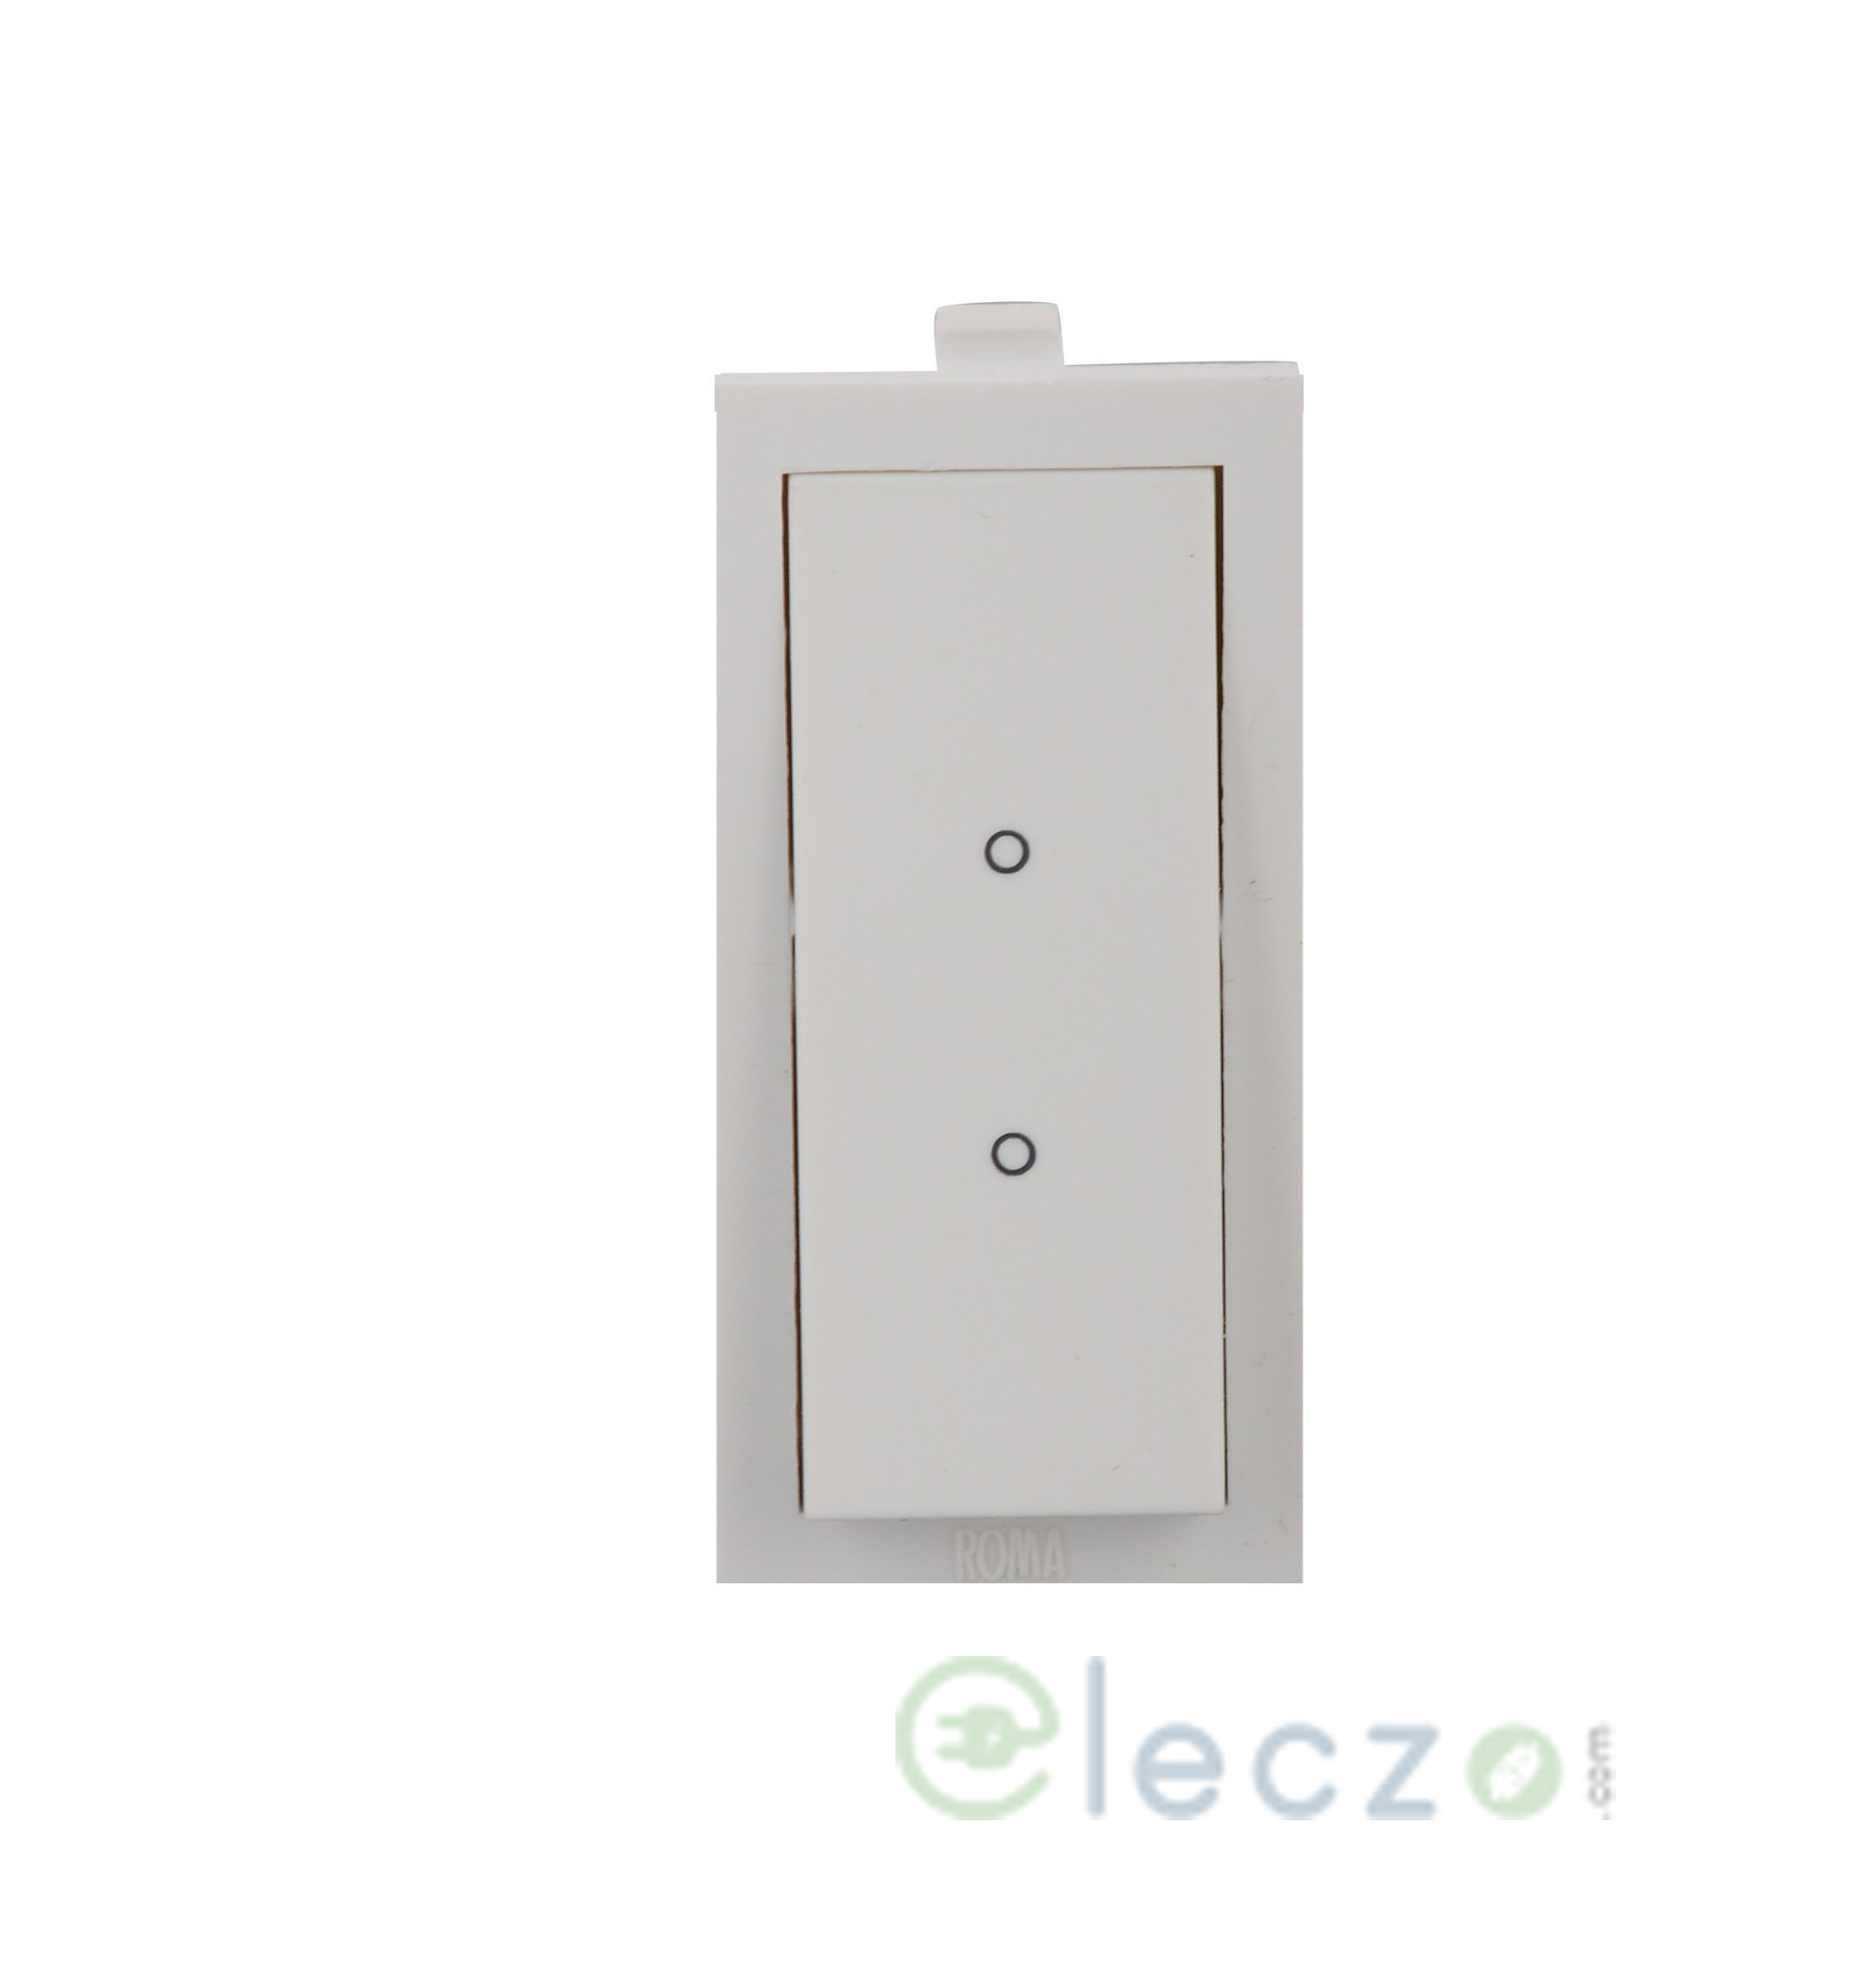 Anchor Roma Switch 20 A, White, 1 Module, 2 Way